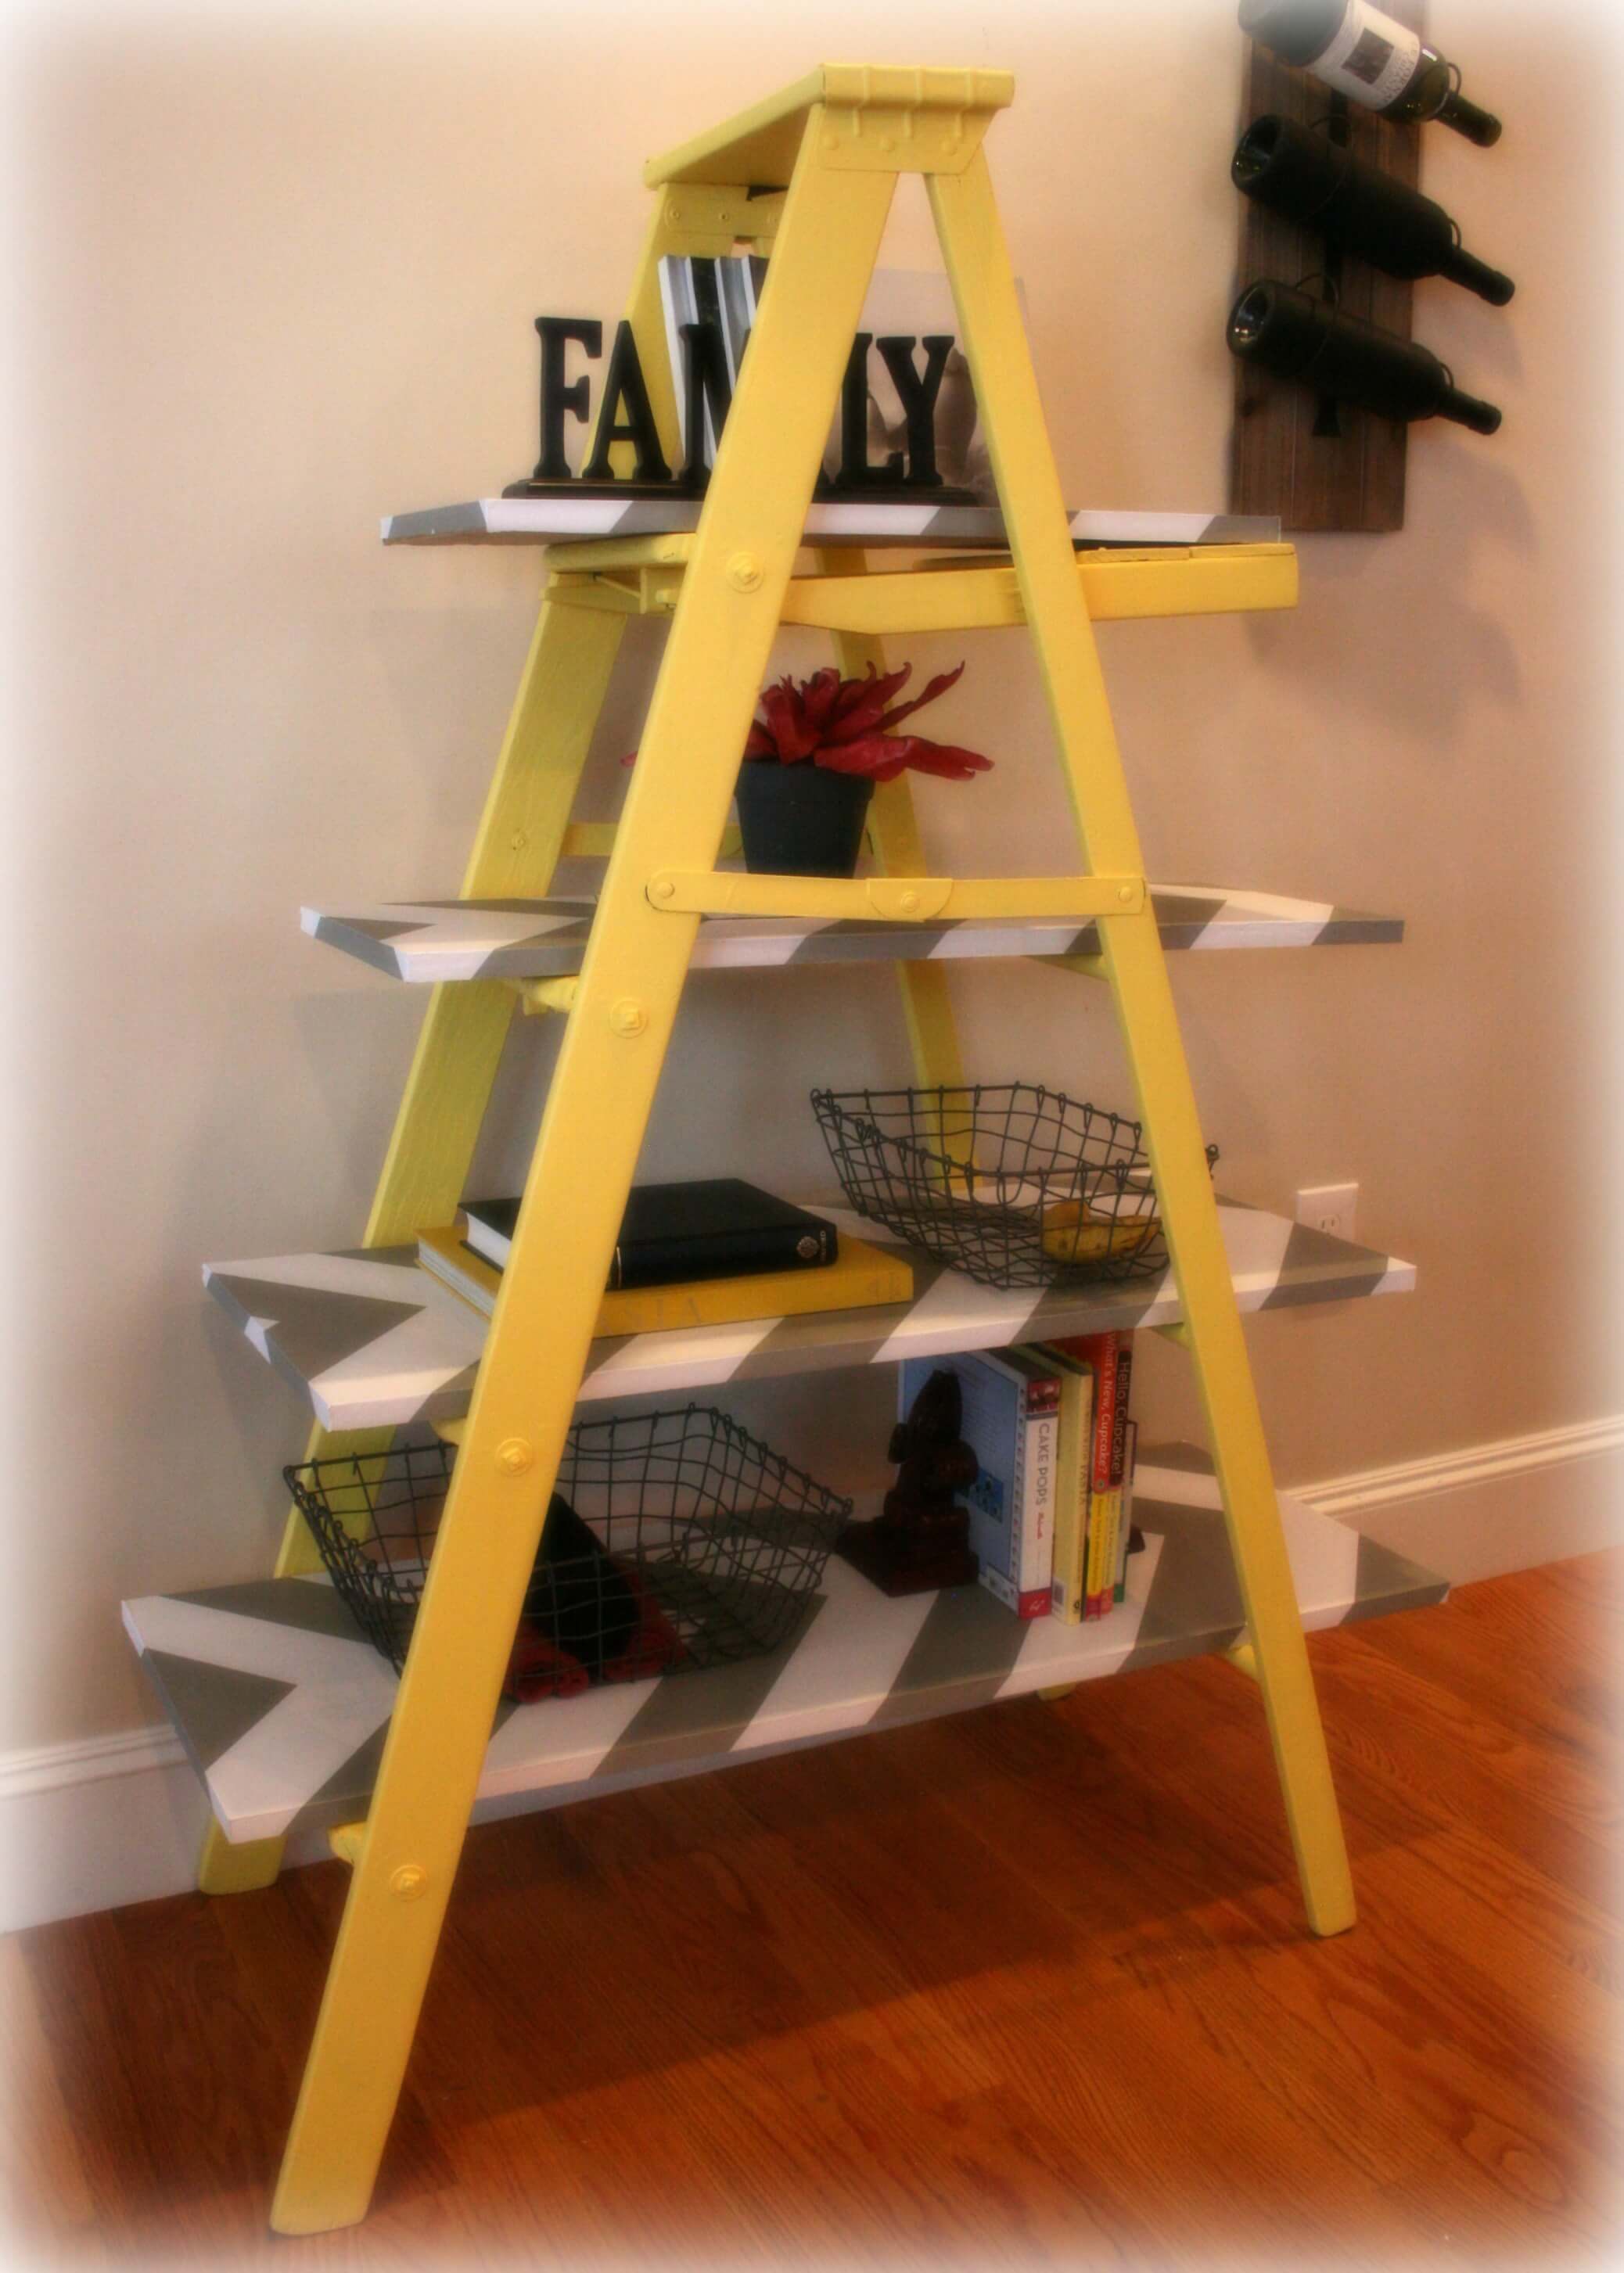 Removable Wallpaper Girls Vintage Yellow Wooden Leaning Ladder Shelf Build It Or